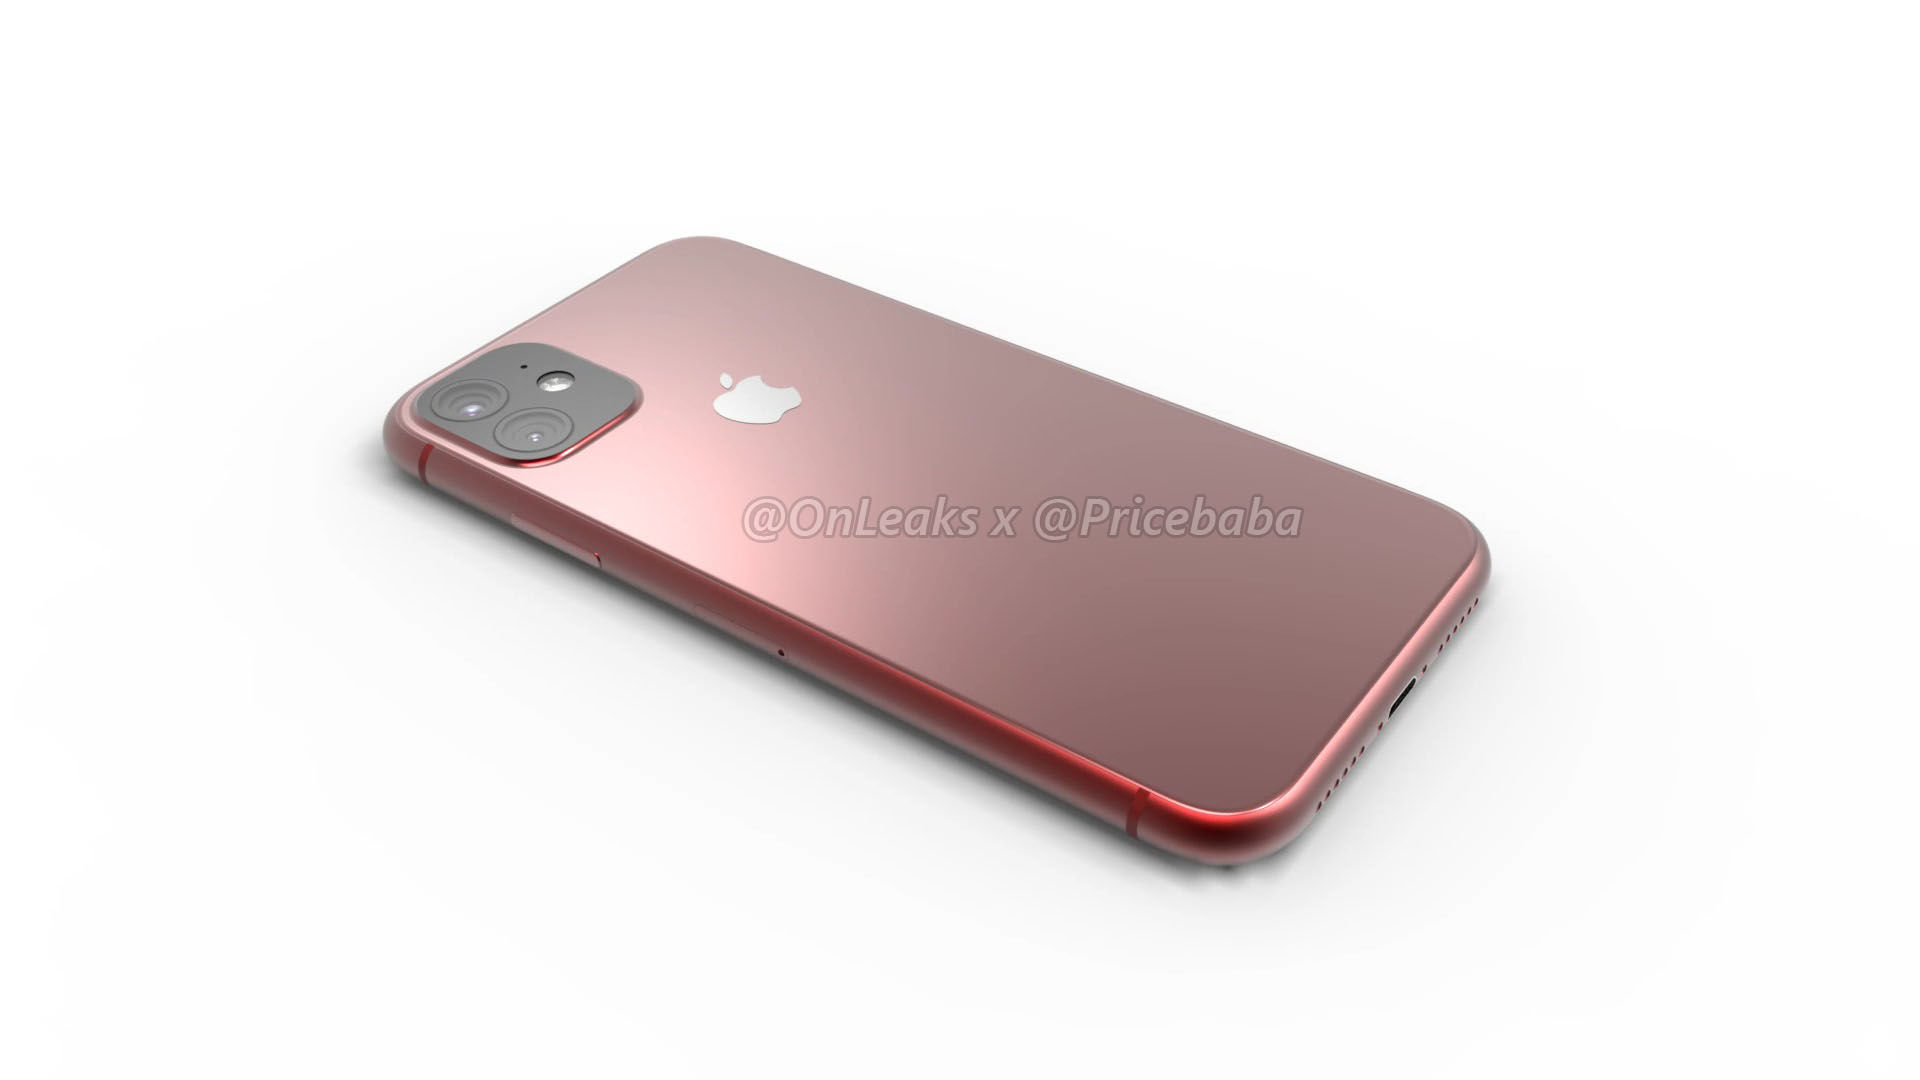 Apple iPhone XR 2019 renders reveal dual camera setup, check images